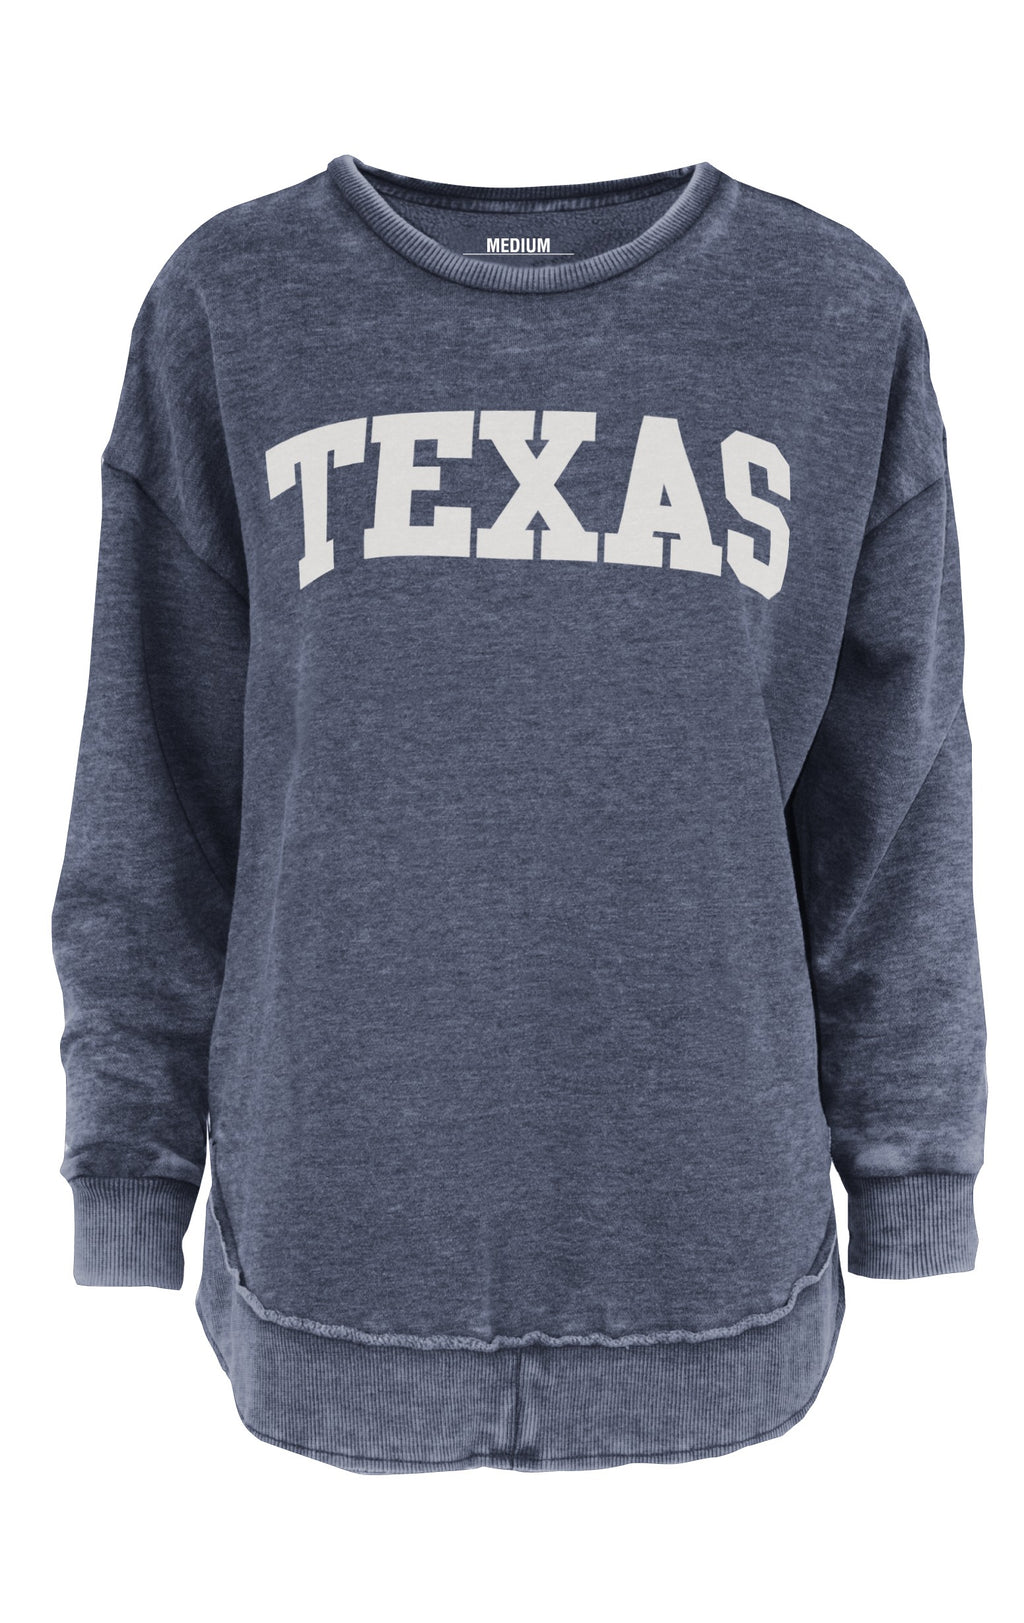 Texas Arch Poncho Fleece